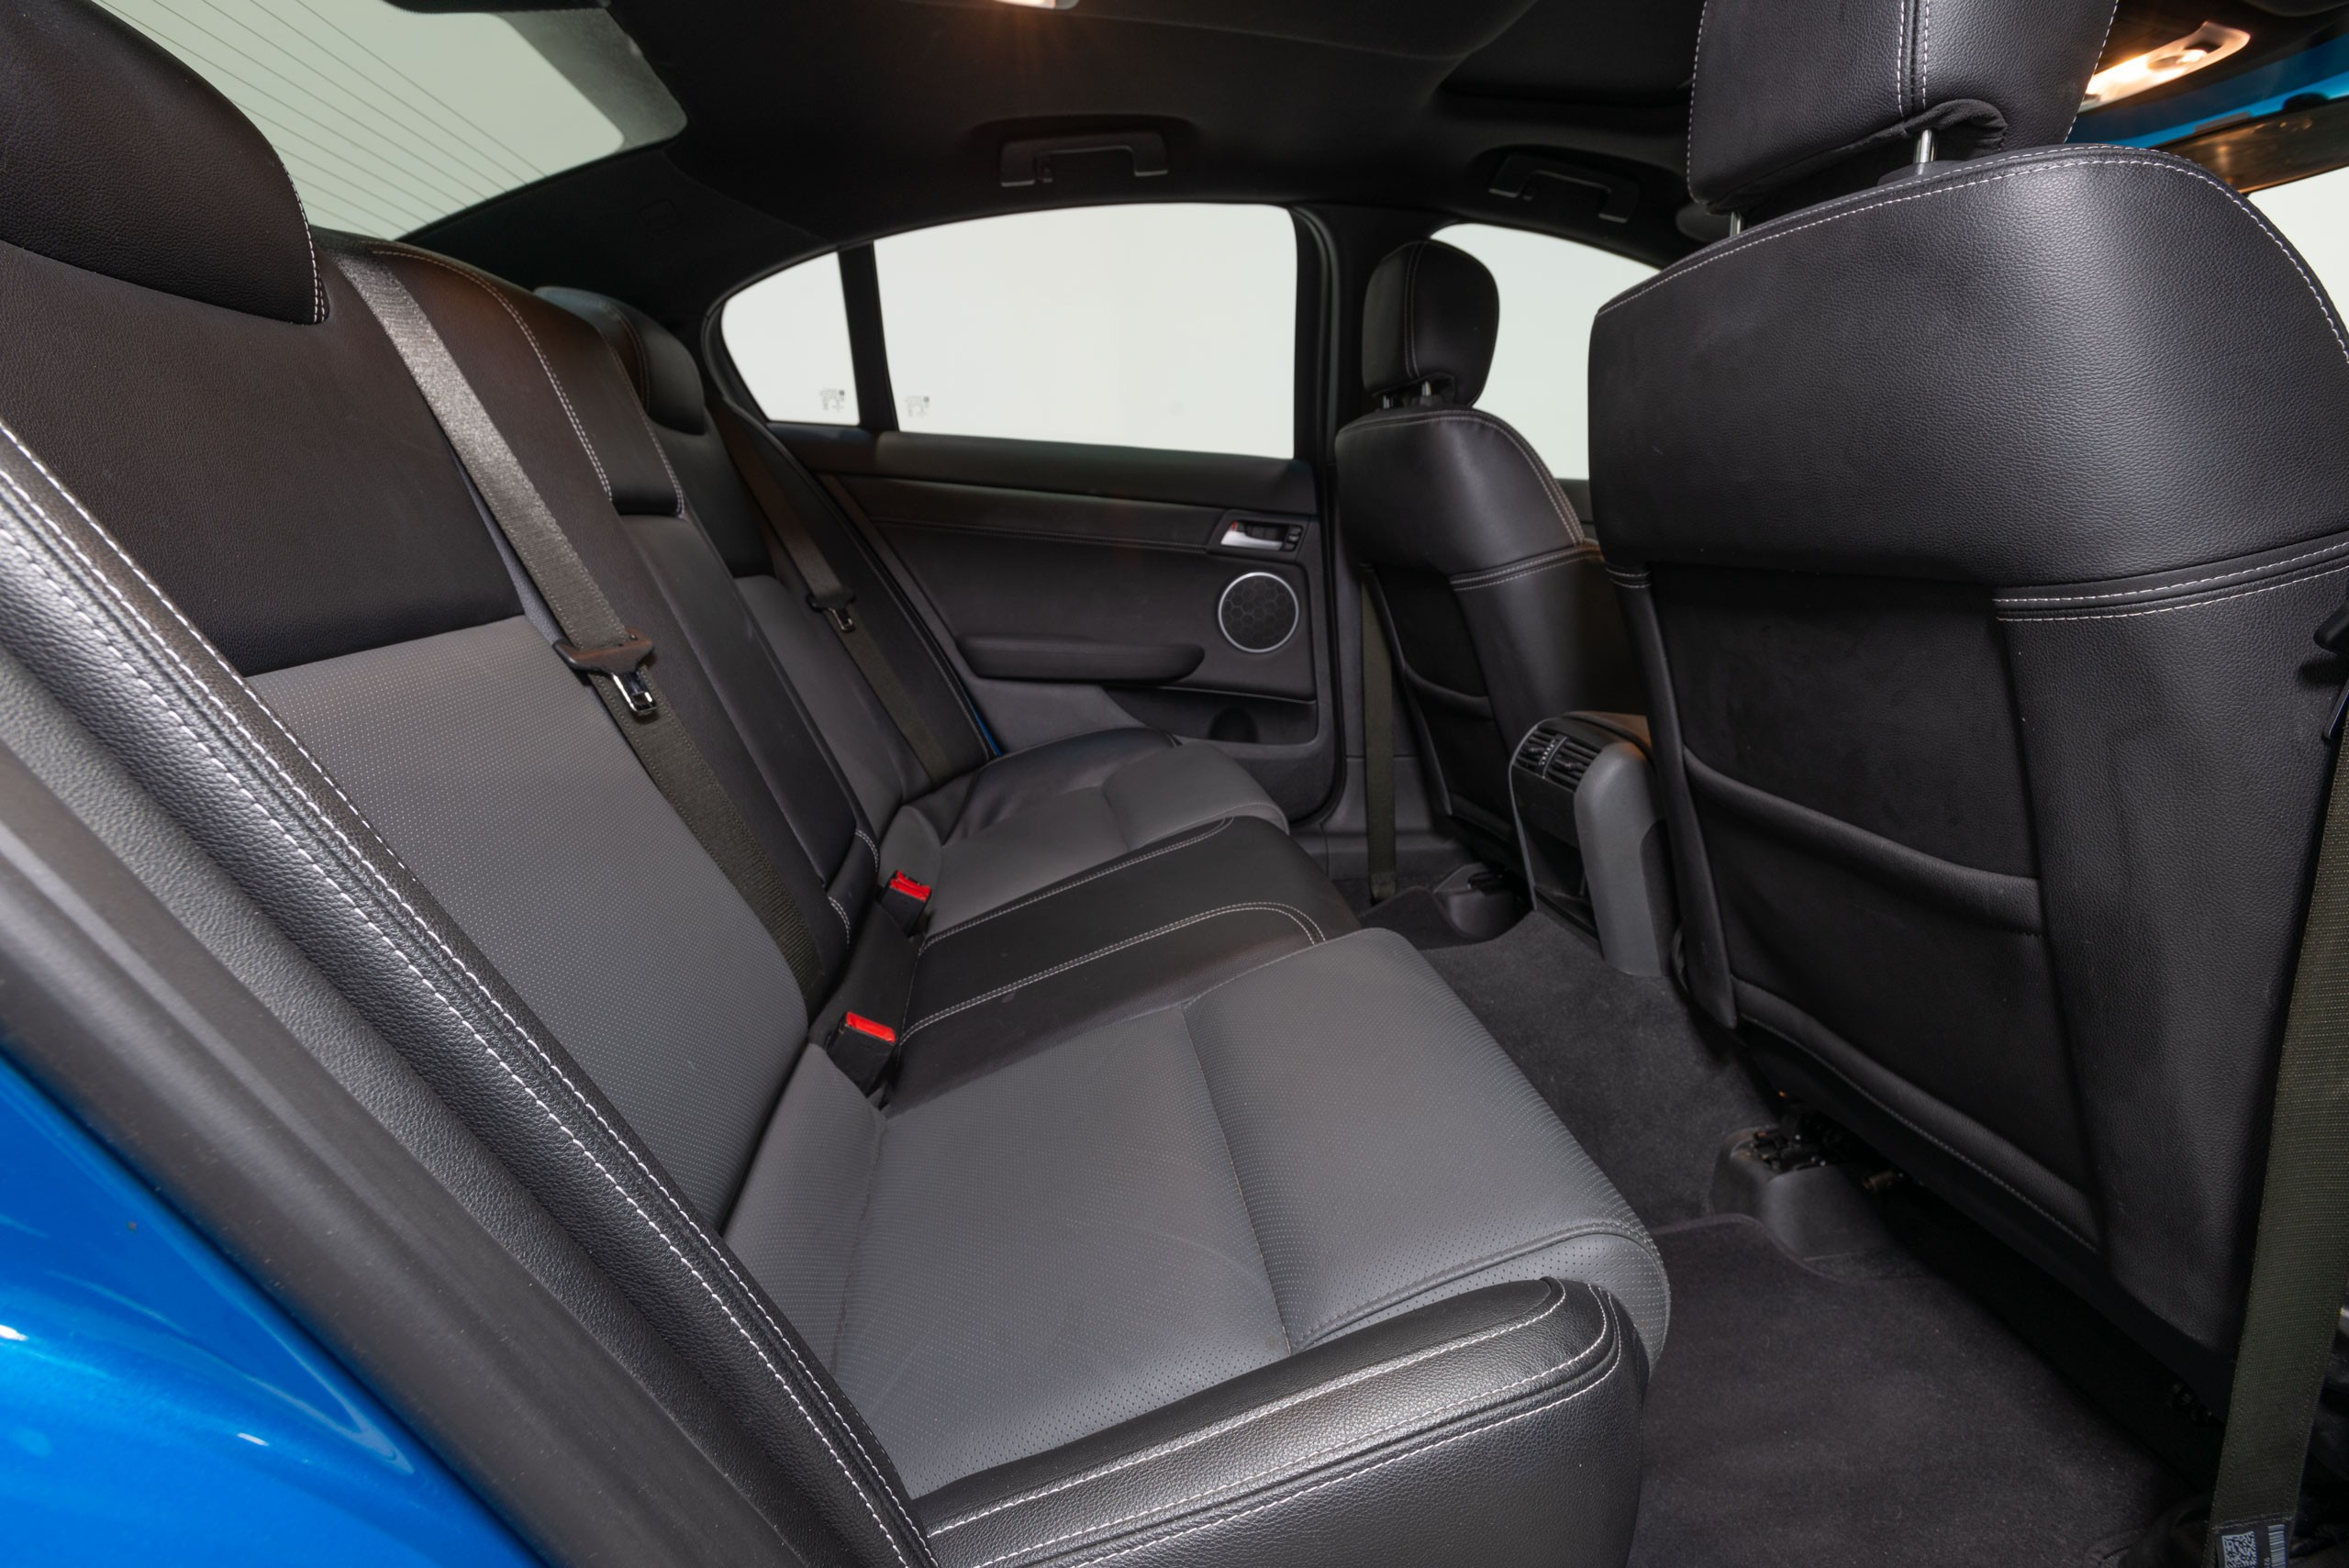 Image 8/10 of 2012 Holden Commodore SS V Z Series